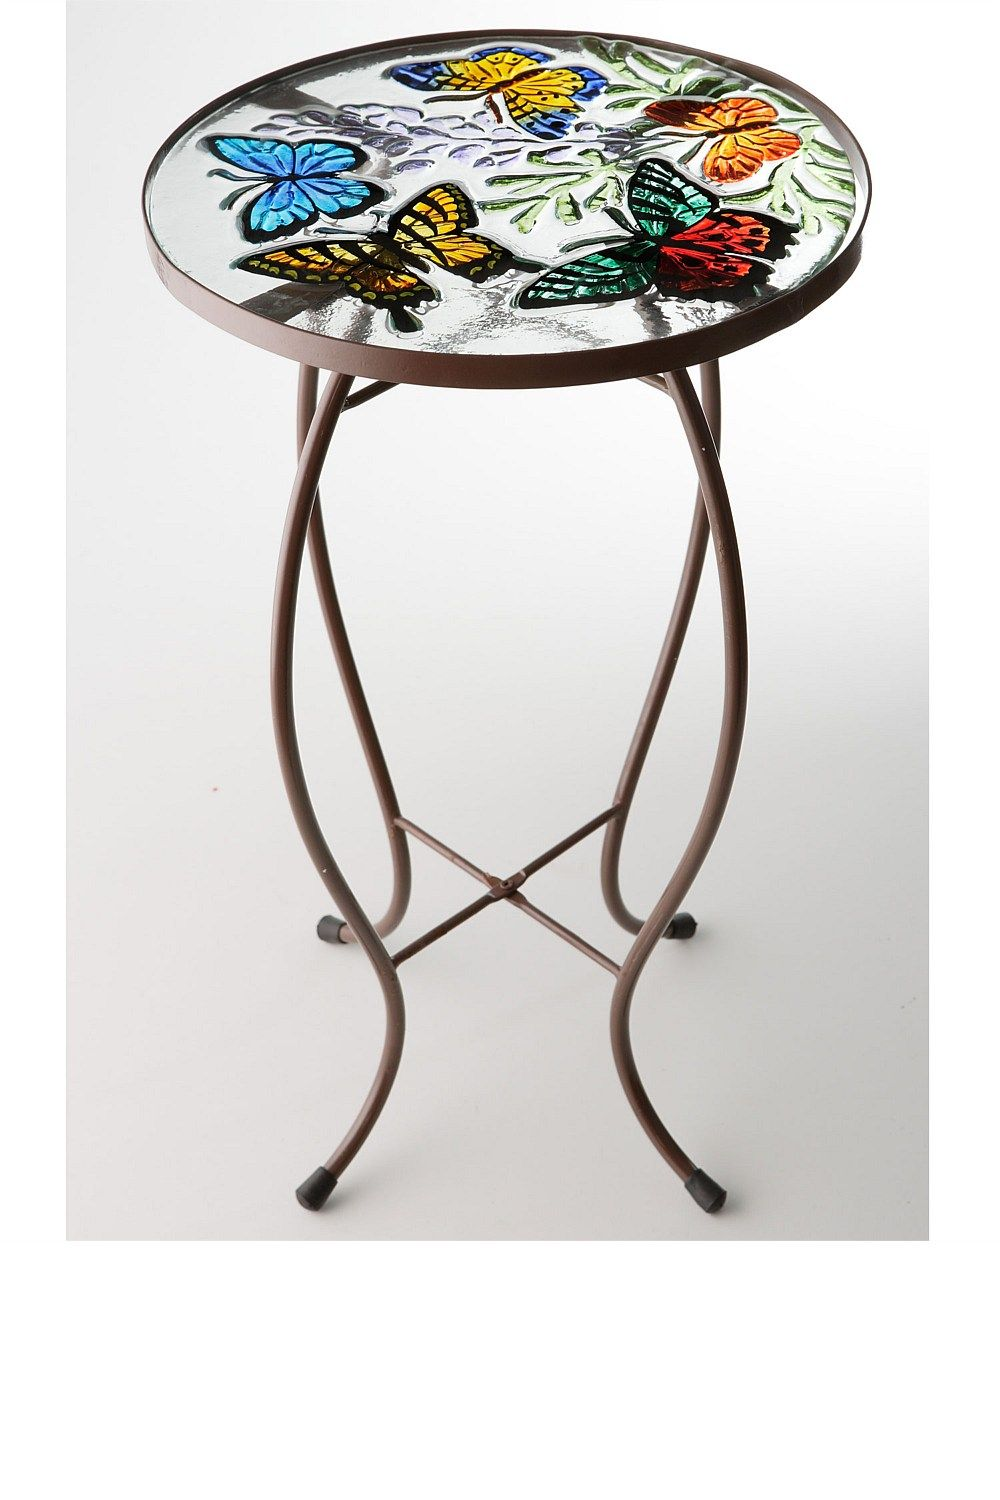 Gold Butterfly Coffee Table Coffee Table Butterfly Table Interior Room Decoration [ 950 x 950 Pixel ]